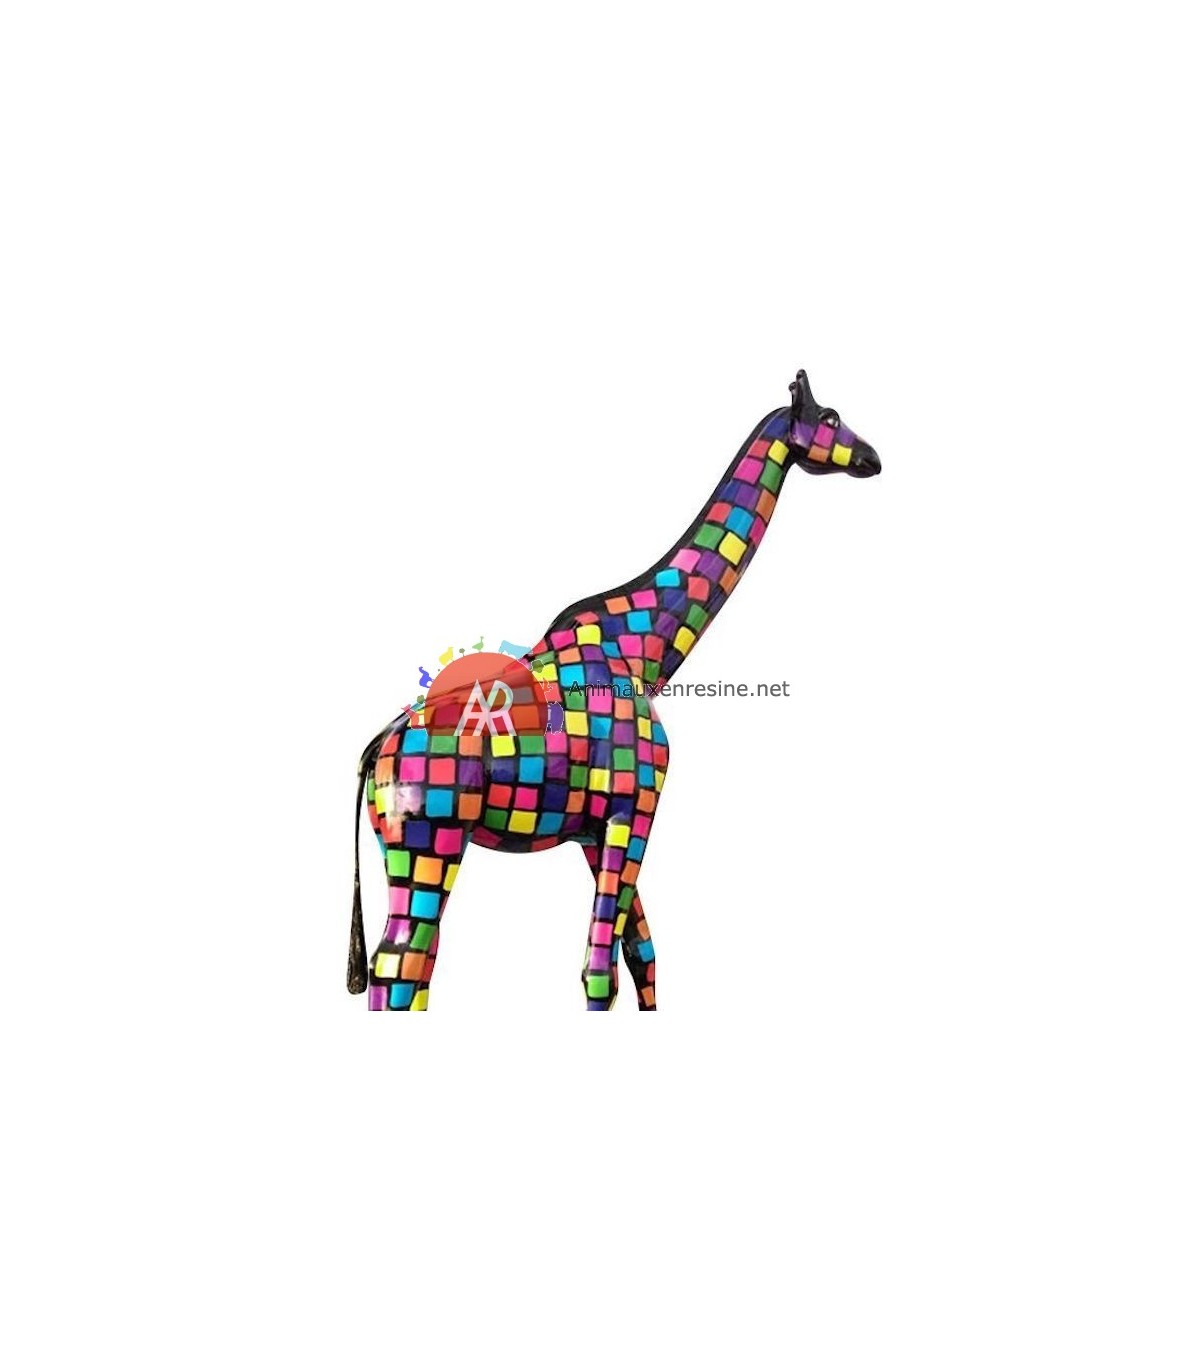 statue design xxl girafe en r sine smartie animauxenresine net. Black Bedroom Furniture Sets. Home Design Ideas